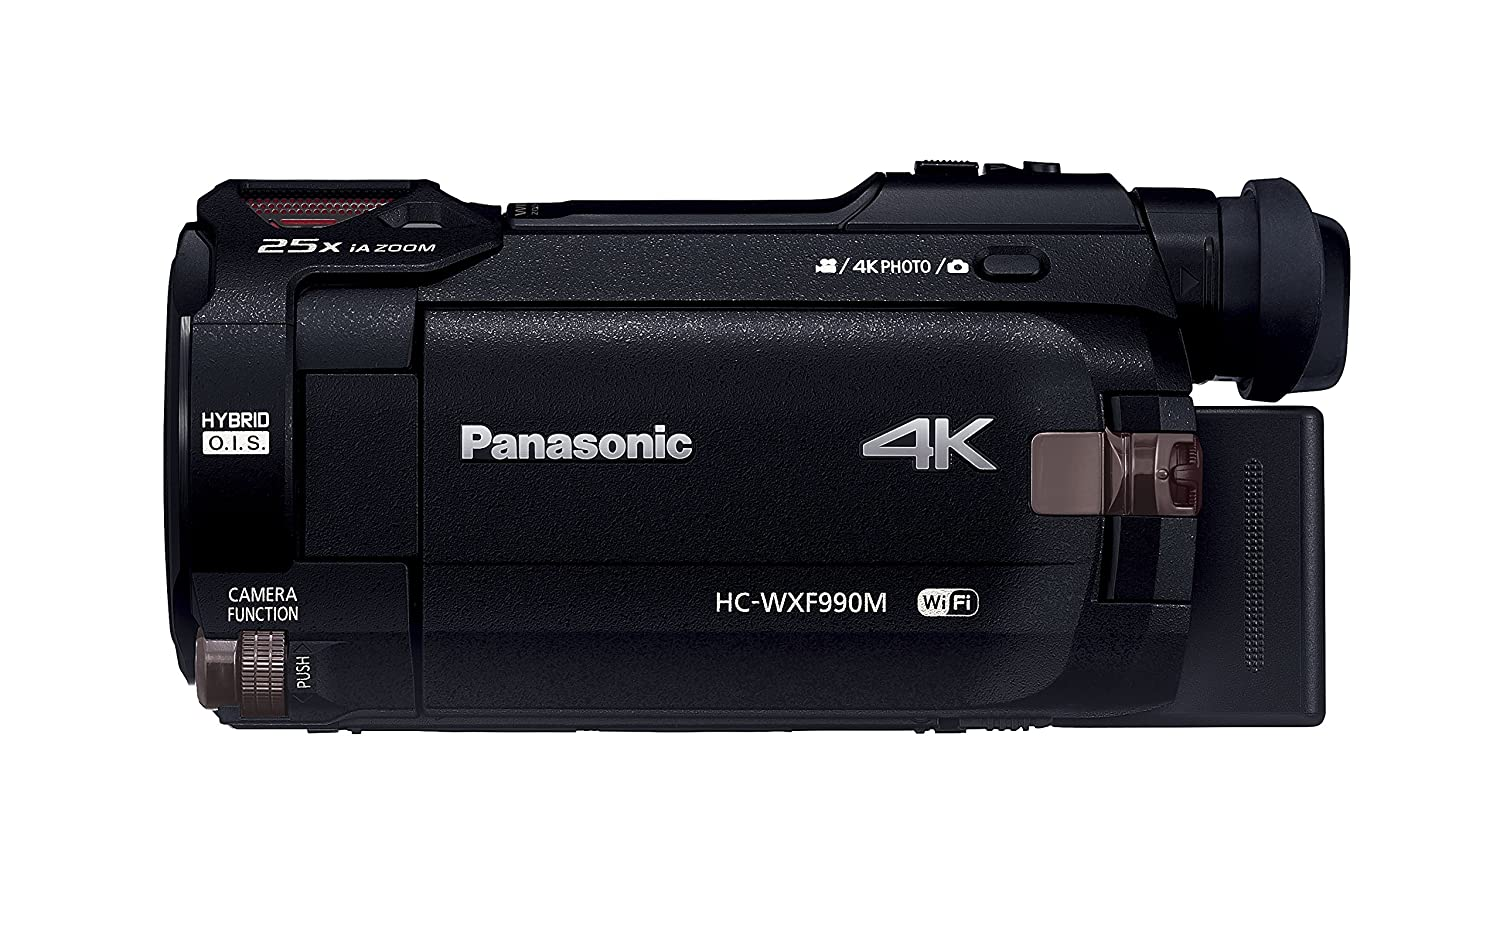 Panasonic Sd Support 64gb Memory Built In 4k Video Hc Wxf995 Ultra Hd Camcorder Camera Wxf990m K Black Electronics